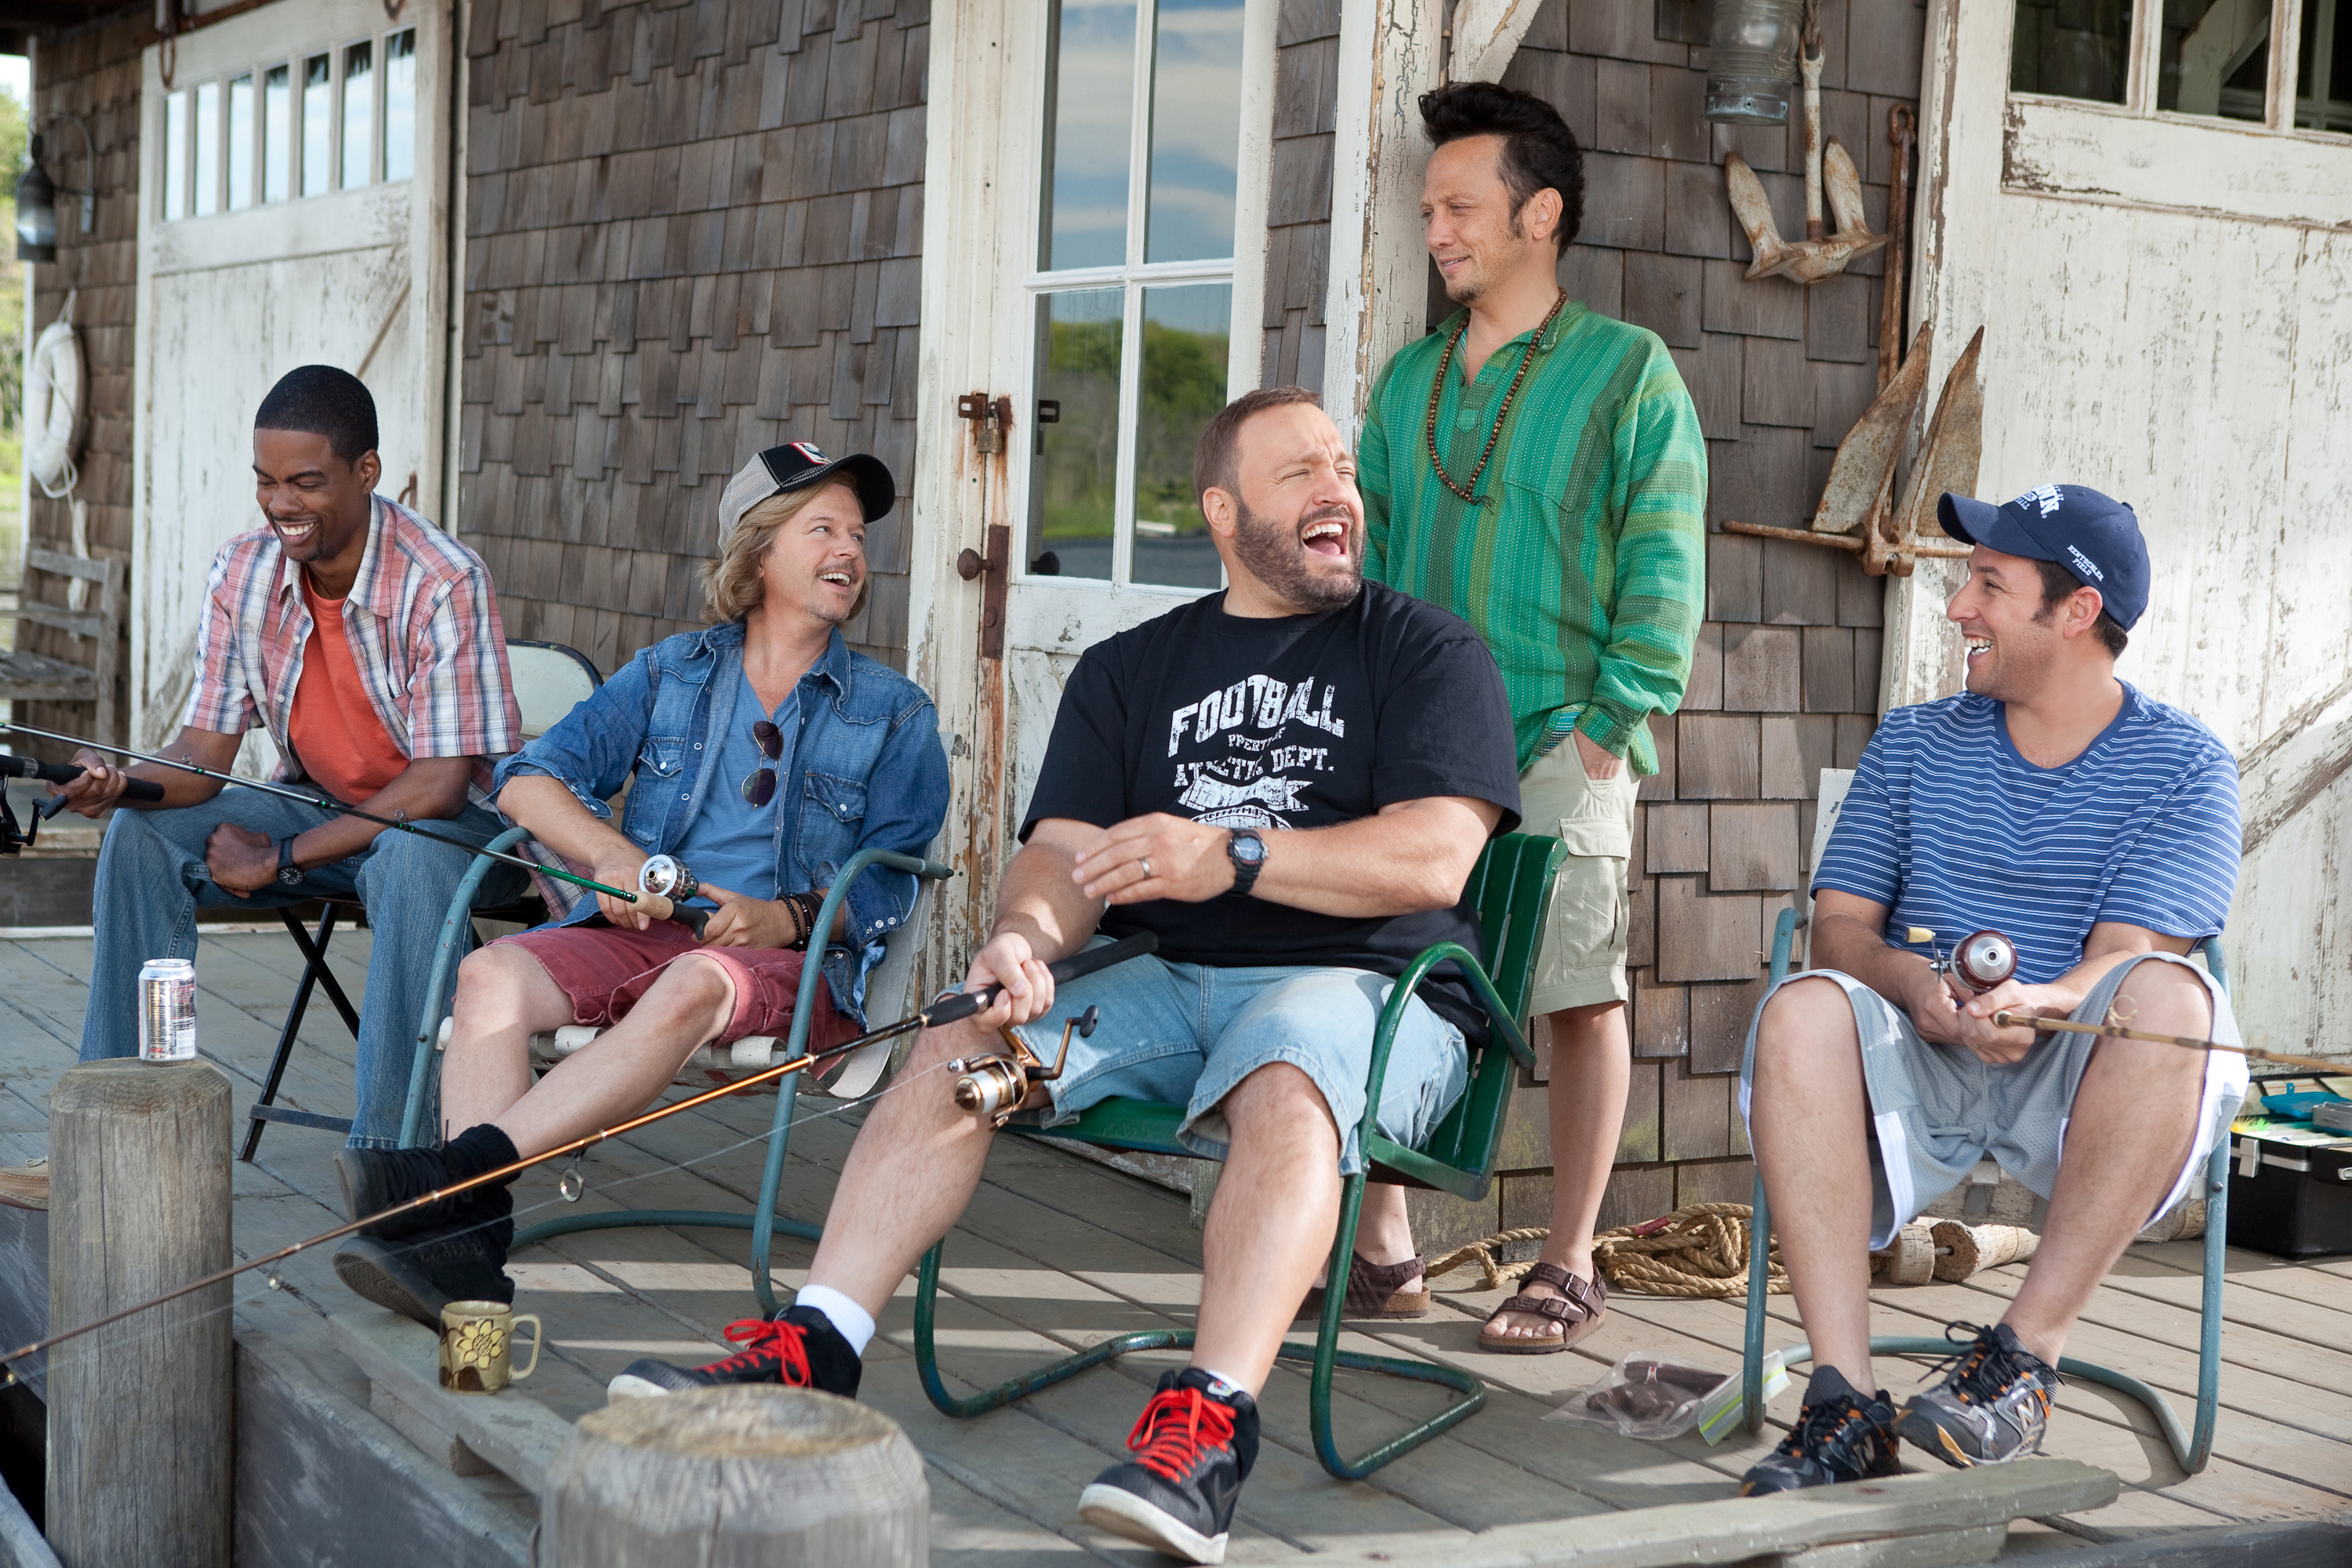 New Images from Adam Sandler's Grown Ups - HeyUGuys